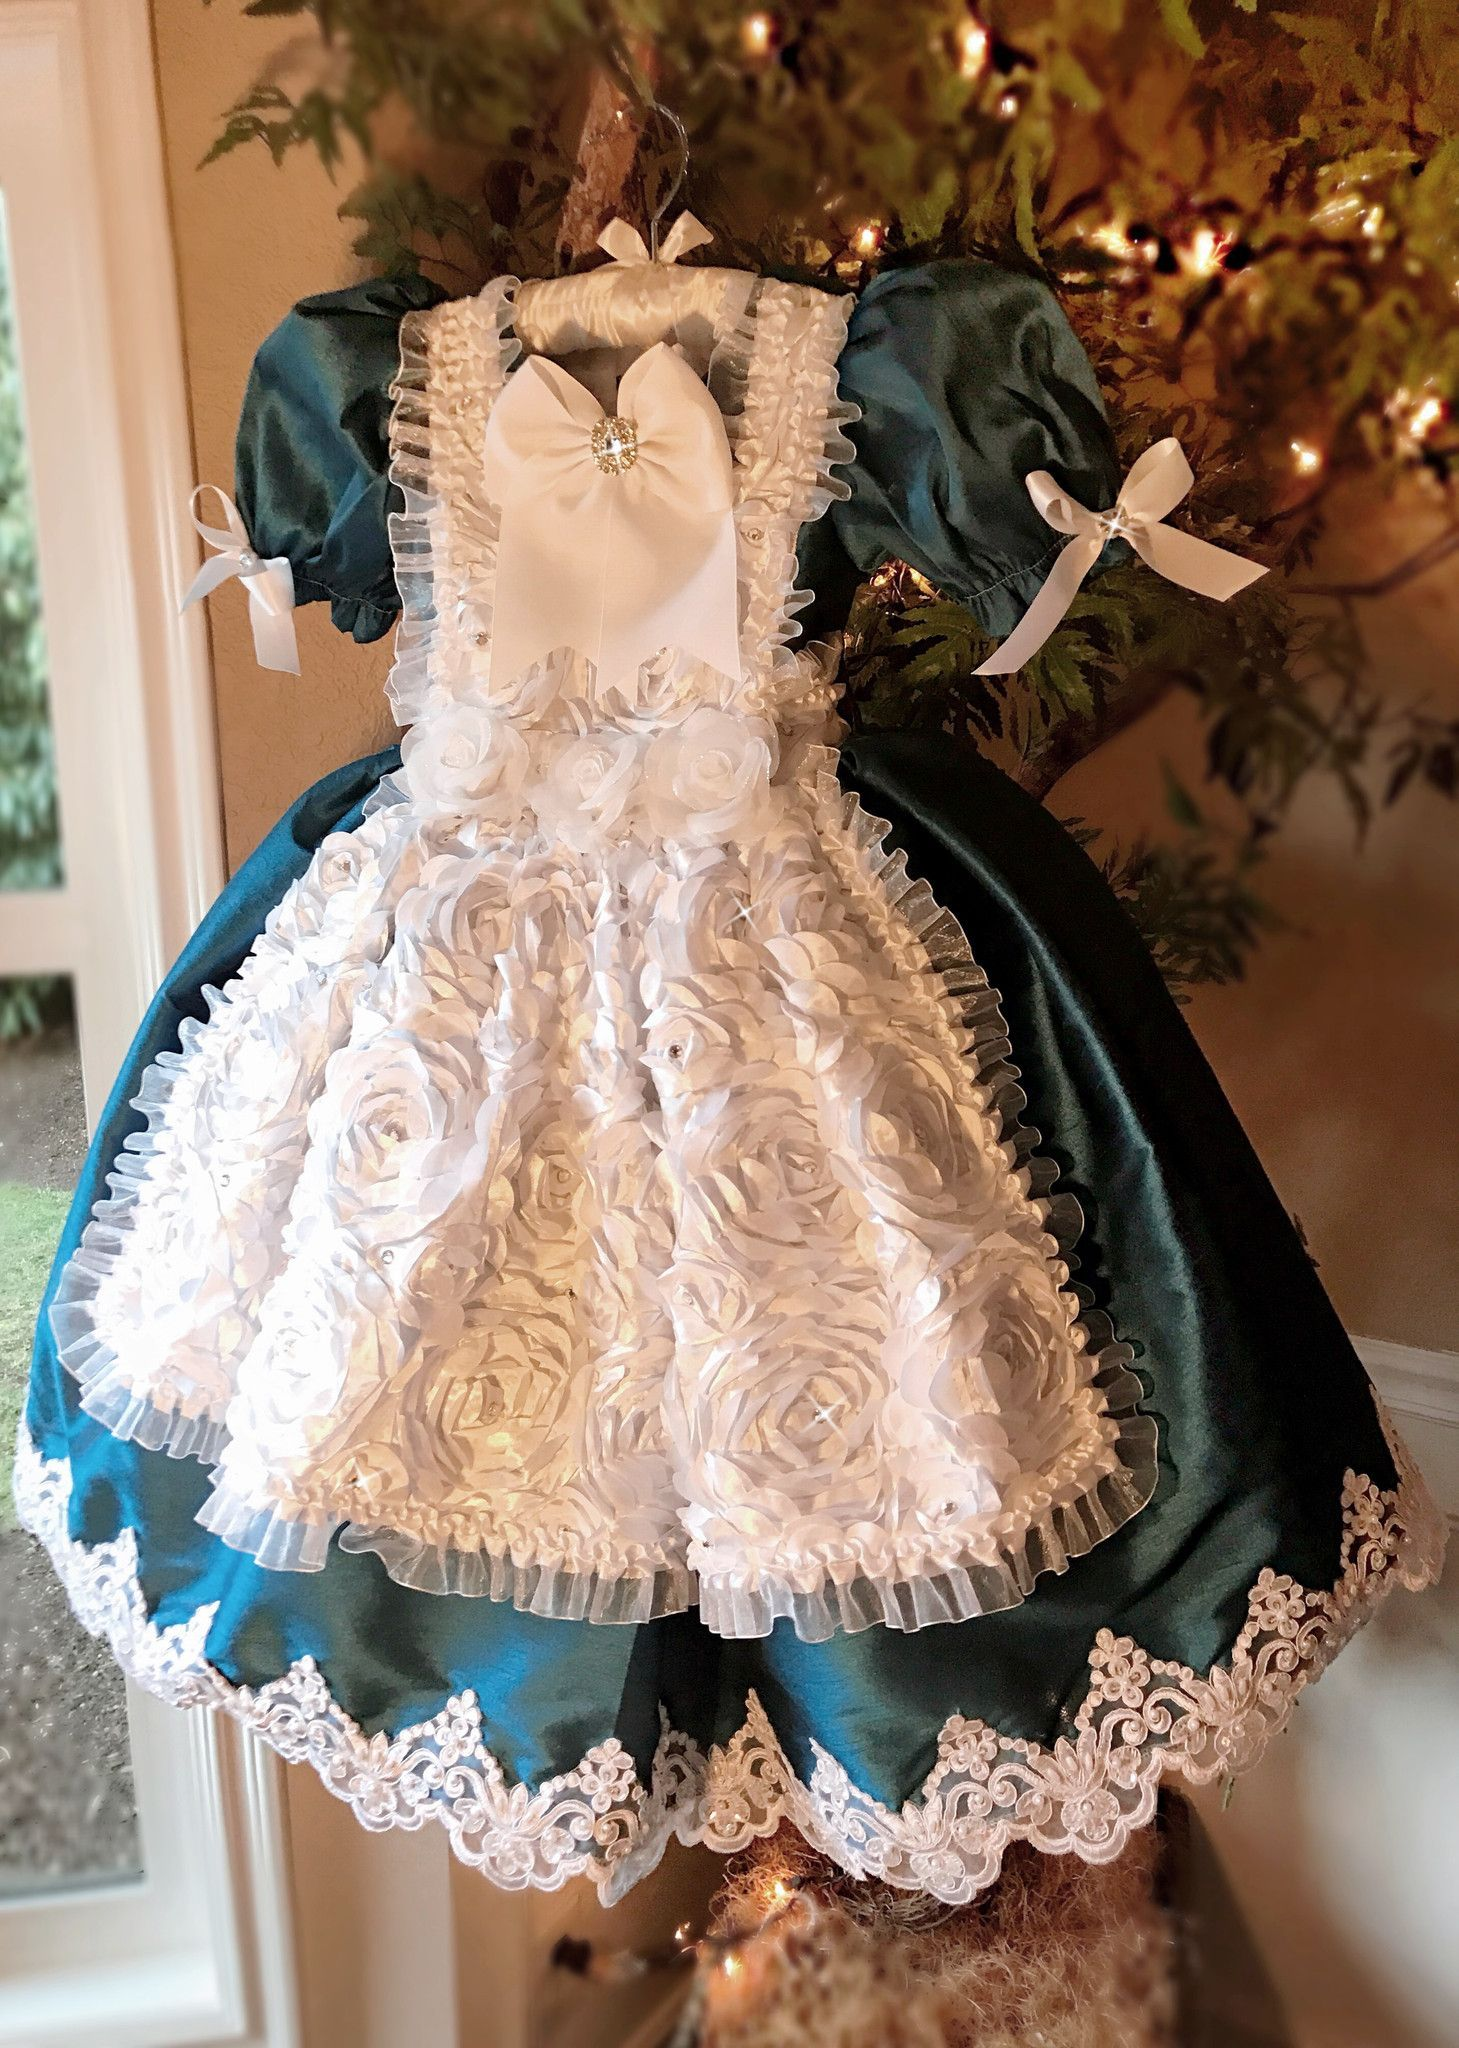 Alice in wonderland themed wedding dress  Through The Looking Glass